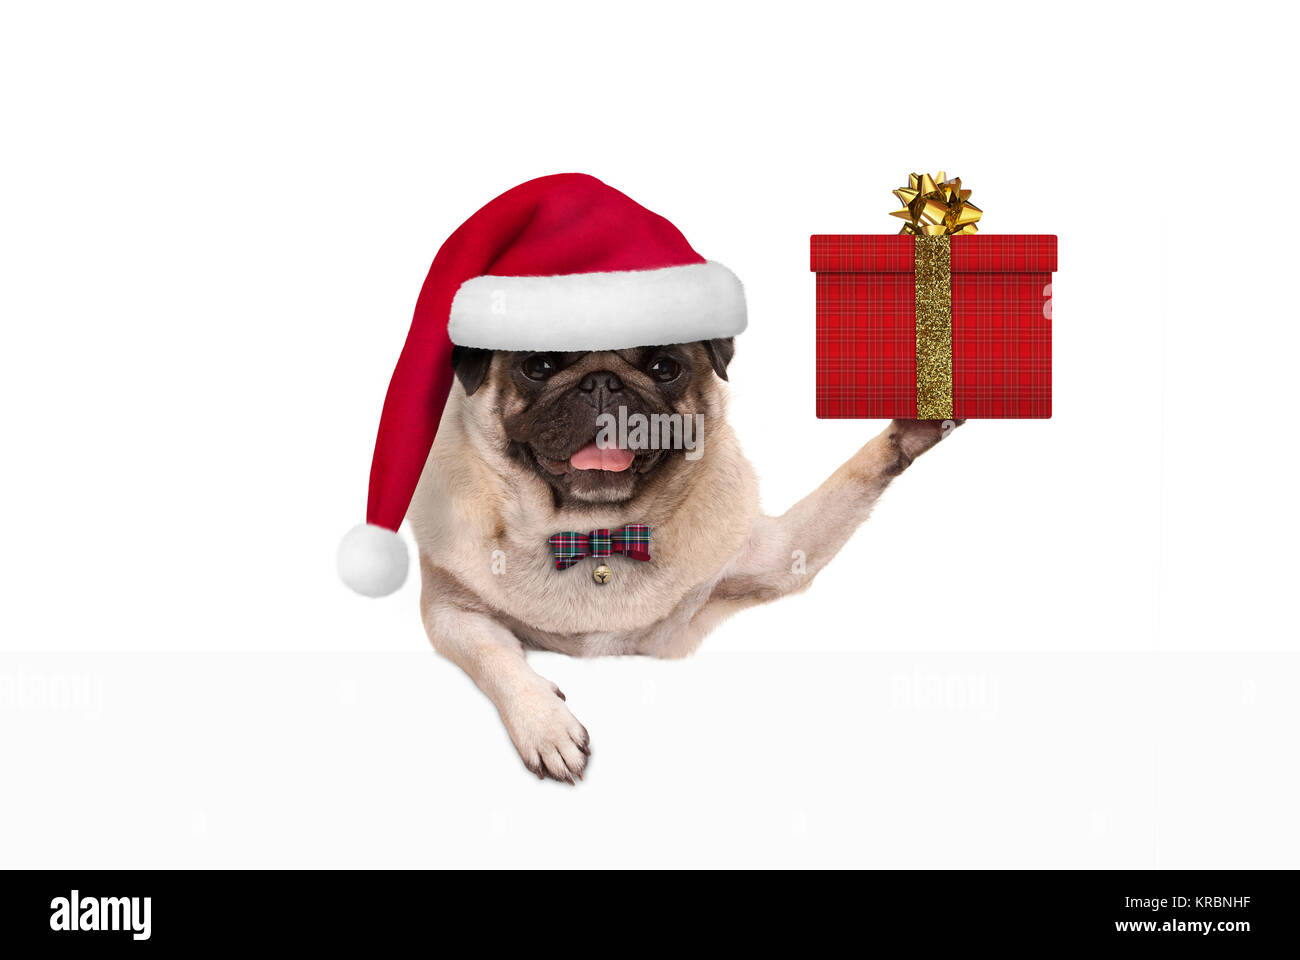 cute Christmas pug dog with santa claus hat, holding up present in gift box, hanging on white banner, isolated - Stock Image